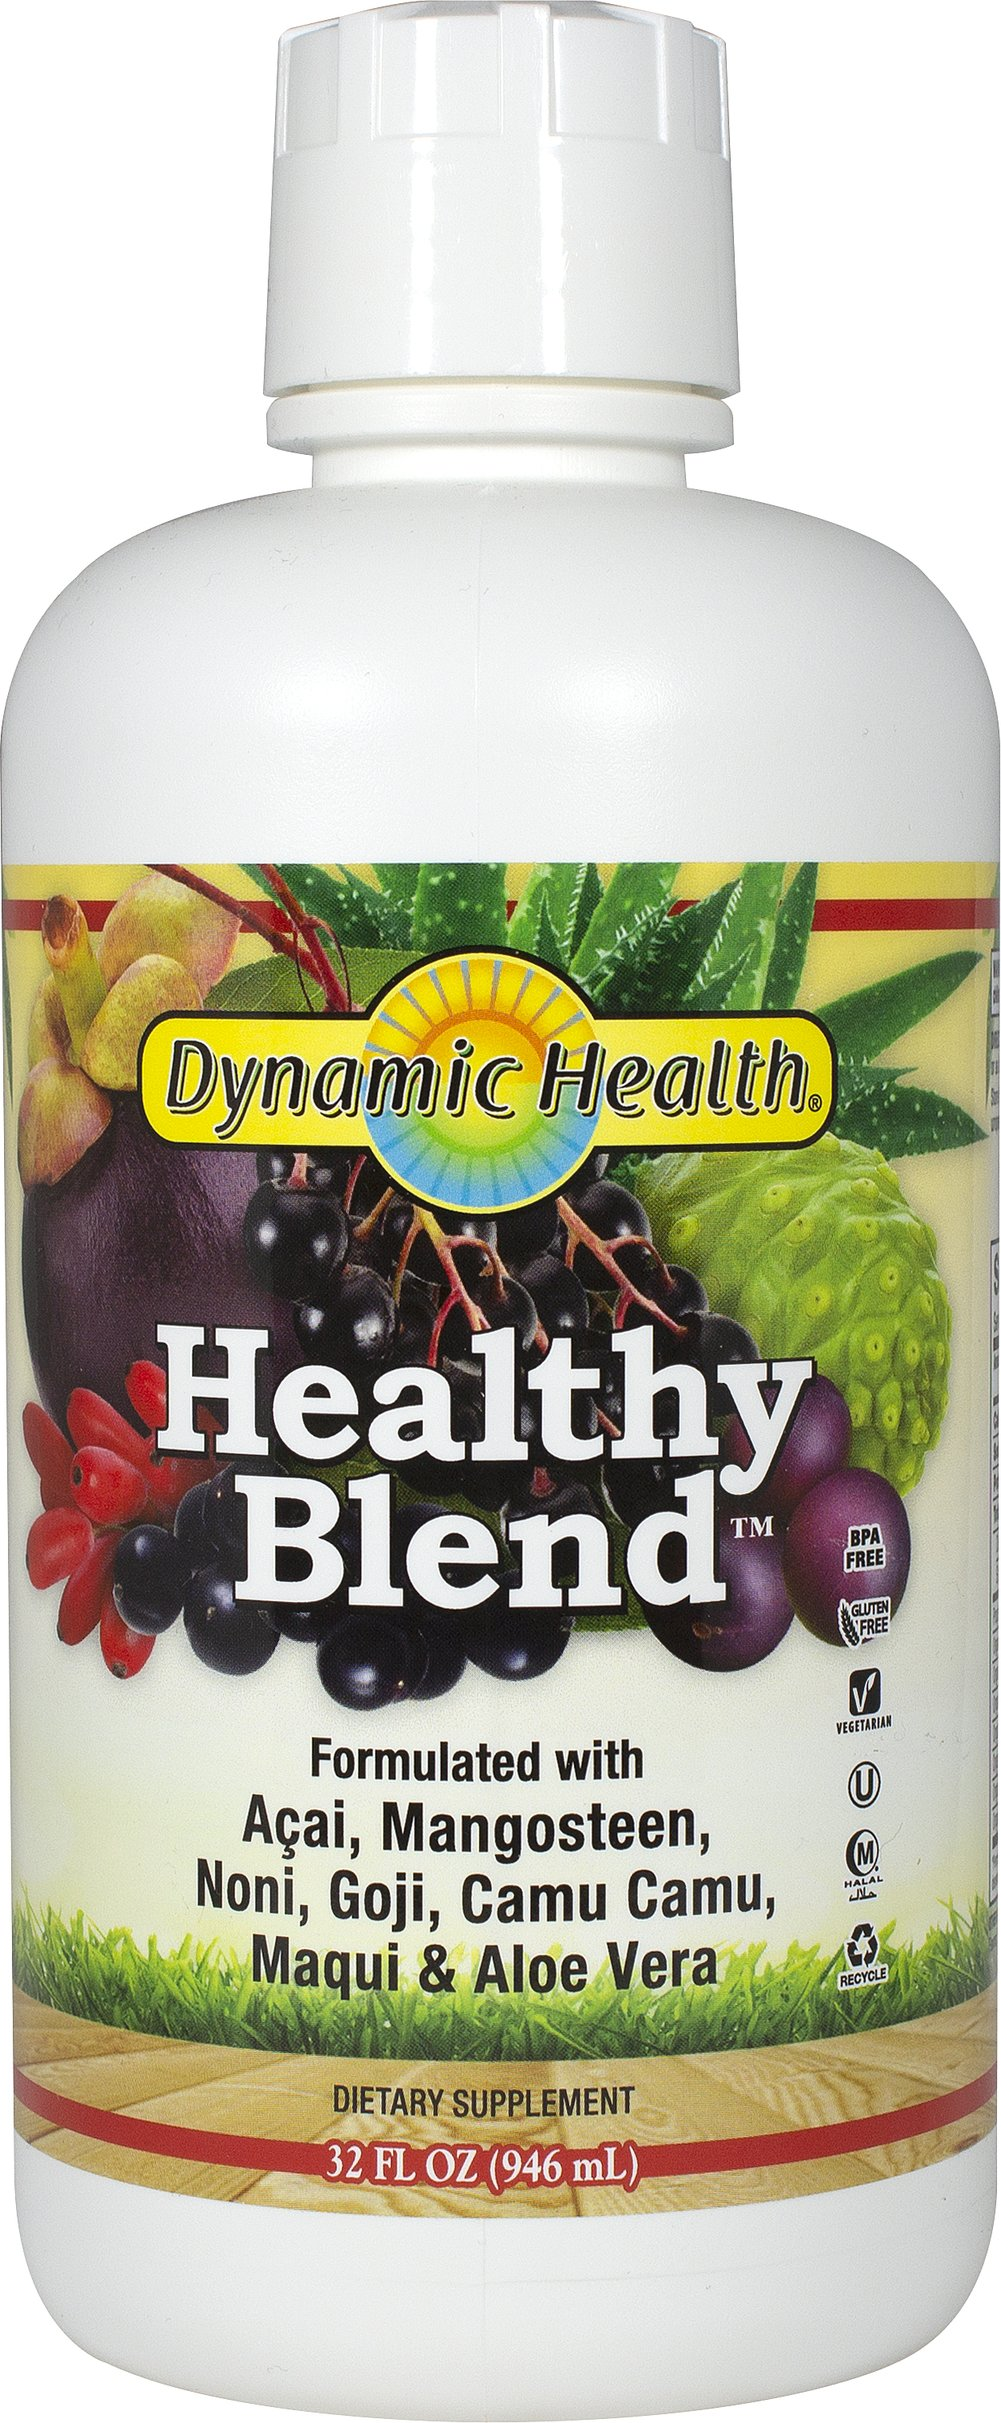 Healthy Blend Superfruit Juice with Camu Camu Thumbnail Alternate Bottle View